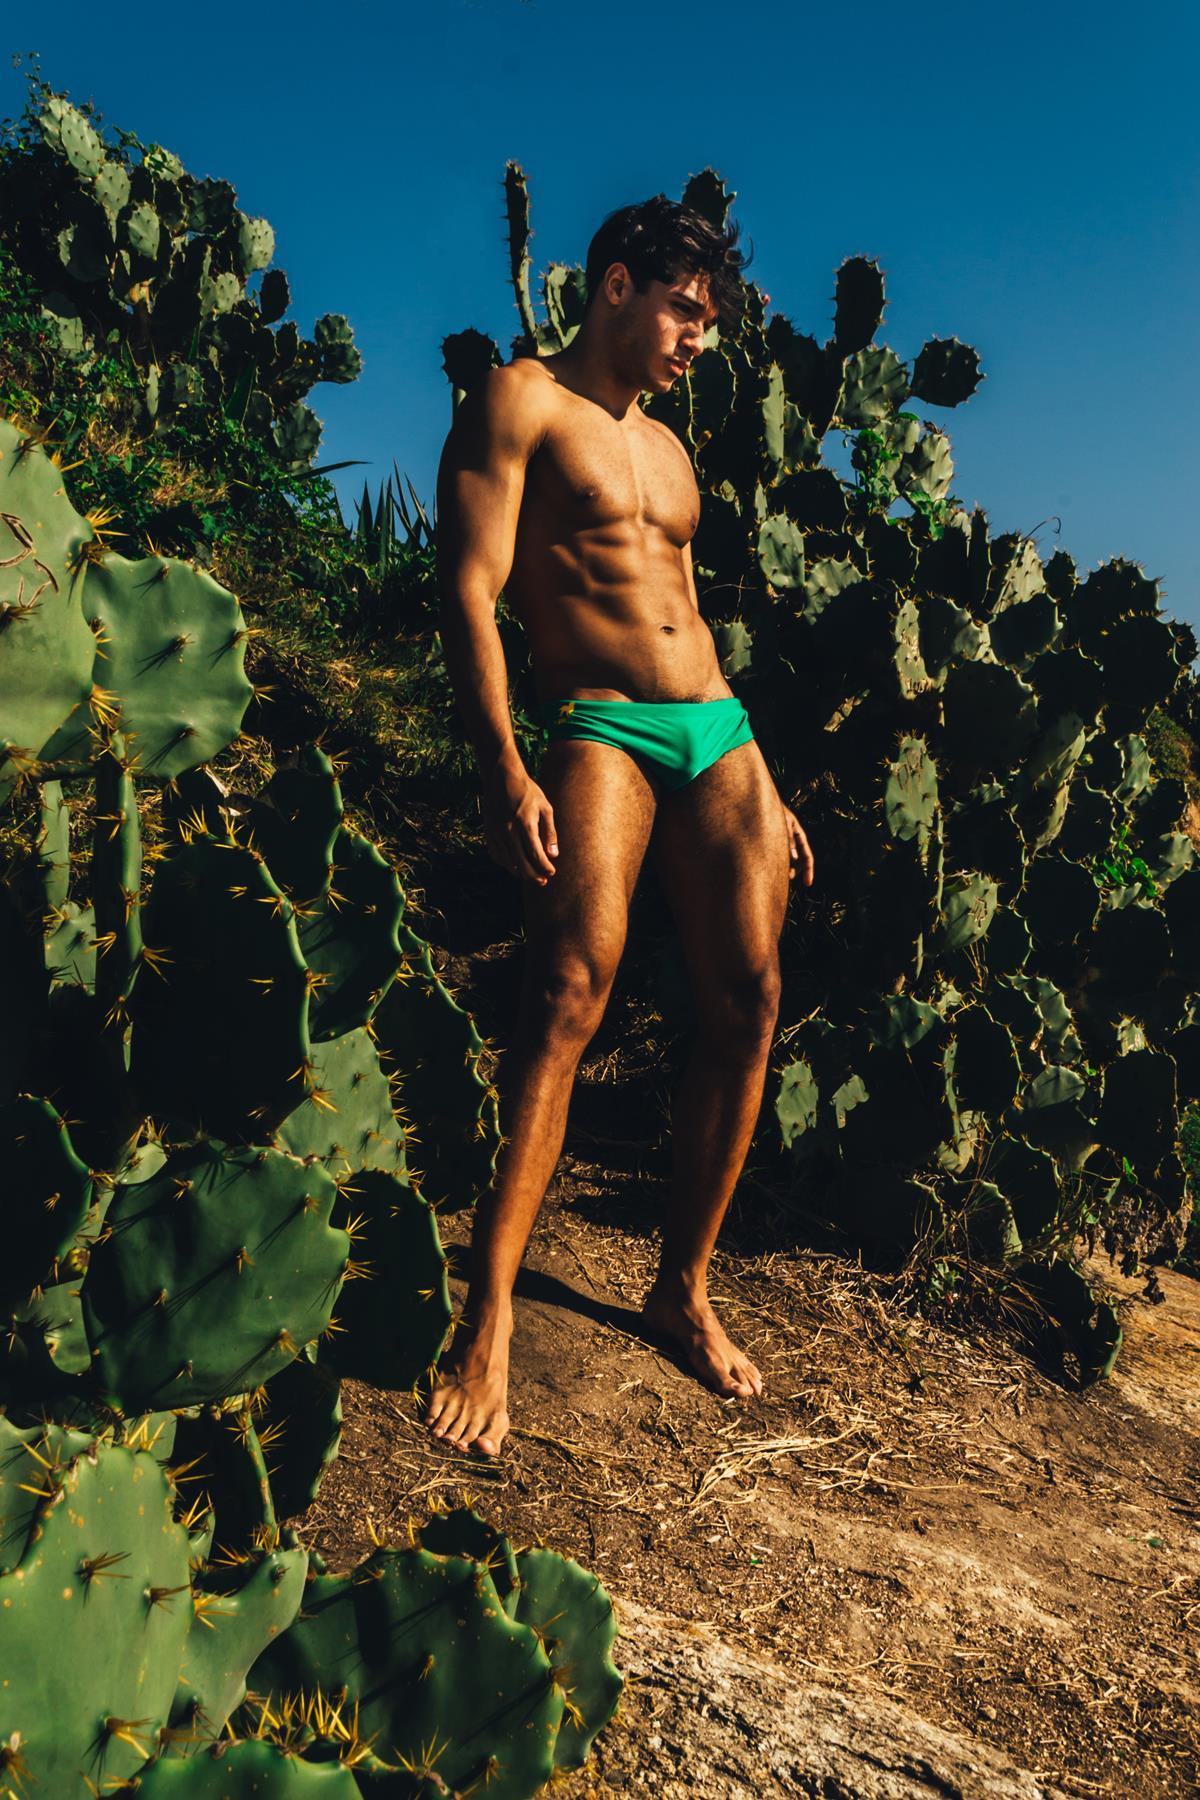 Igor Costa by Beto Urbano for Brazilian Male Model